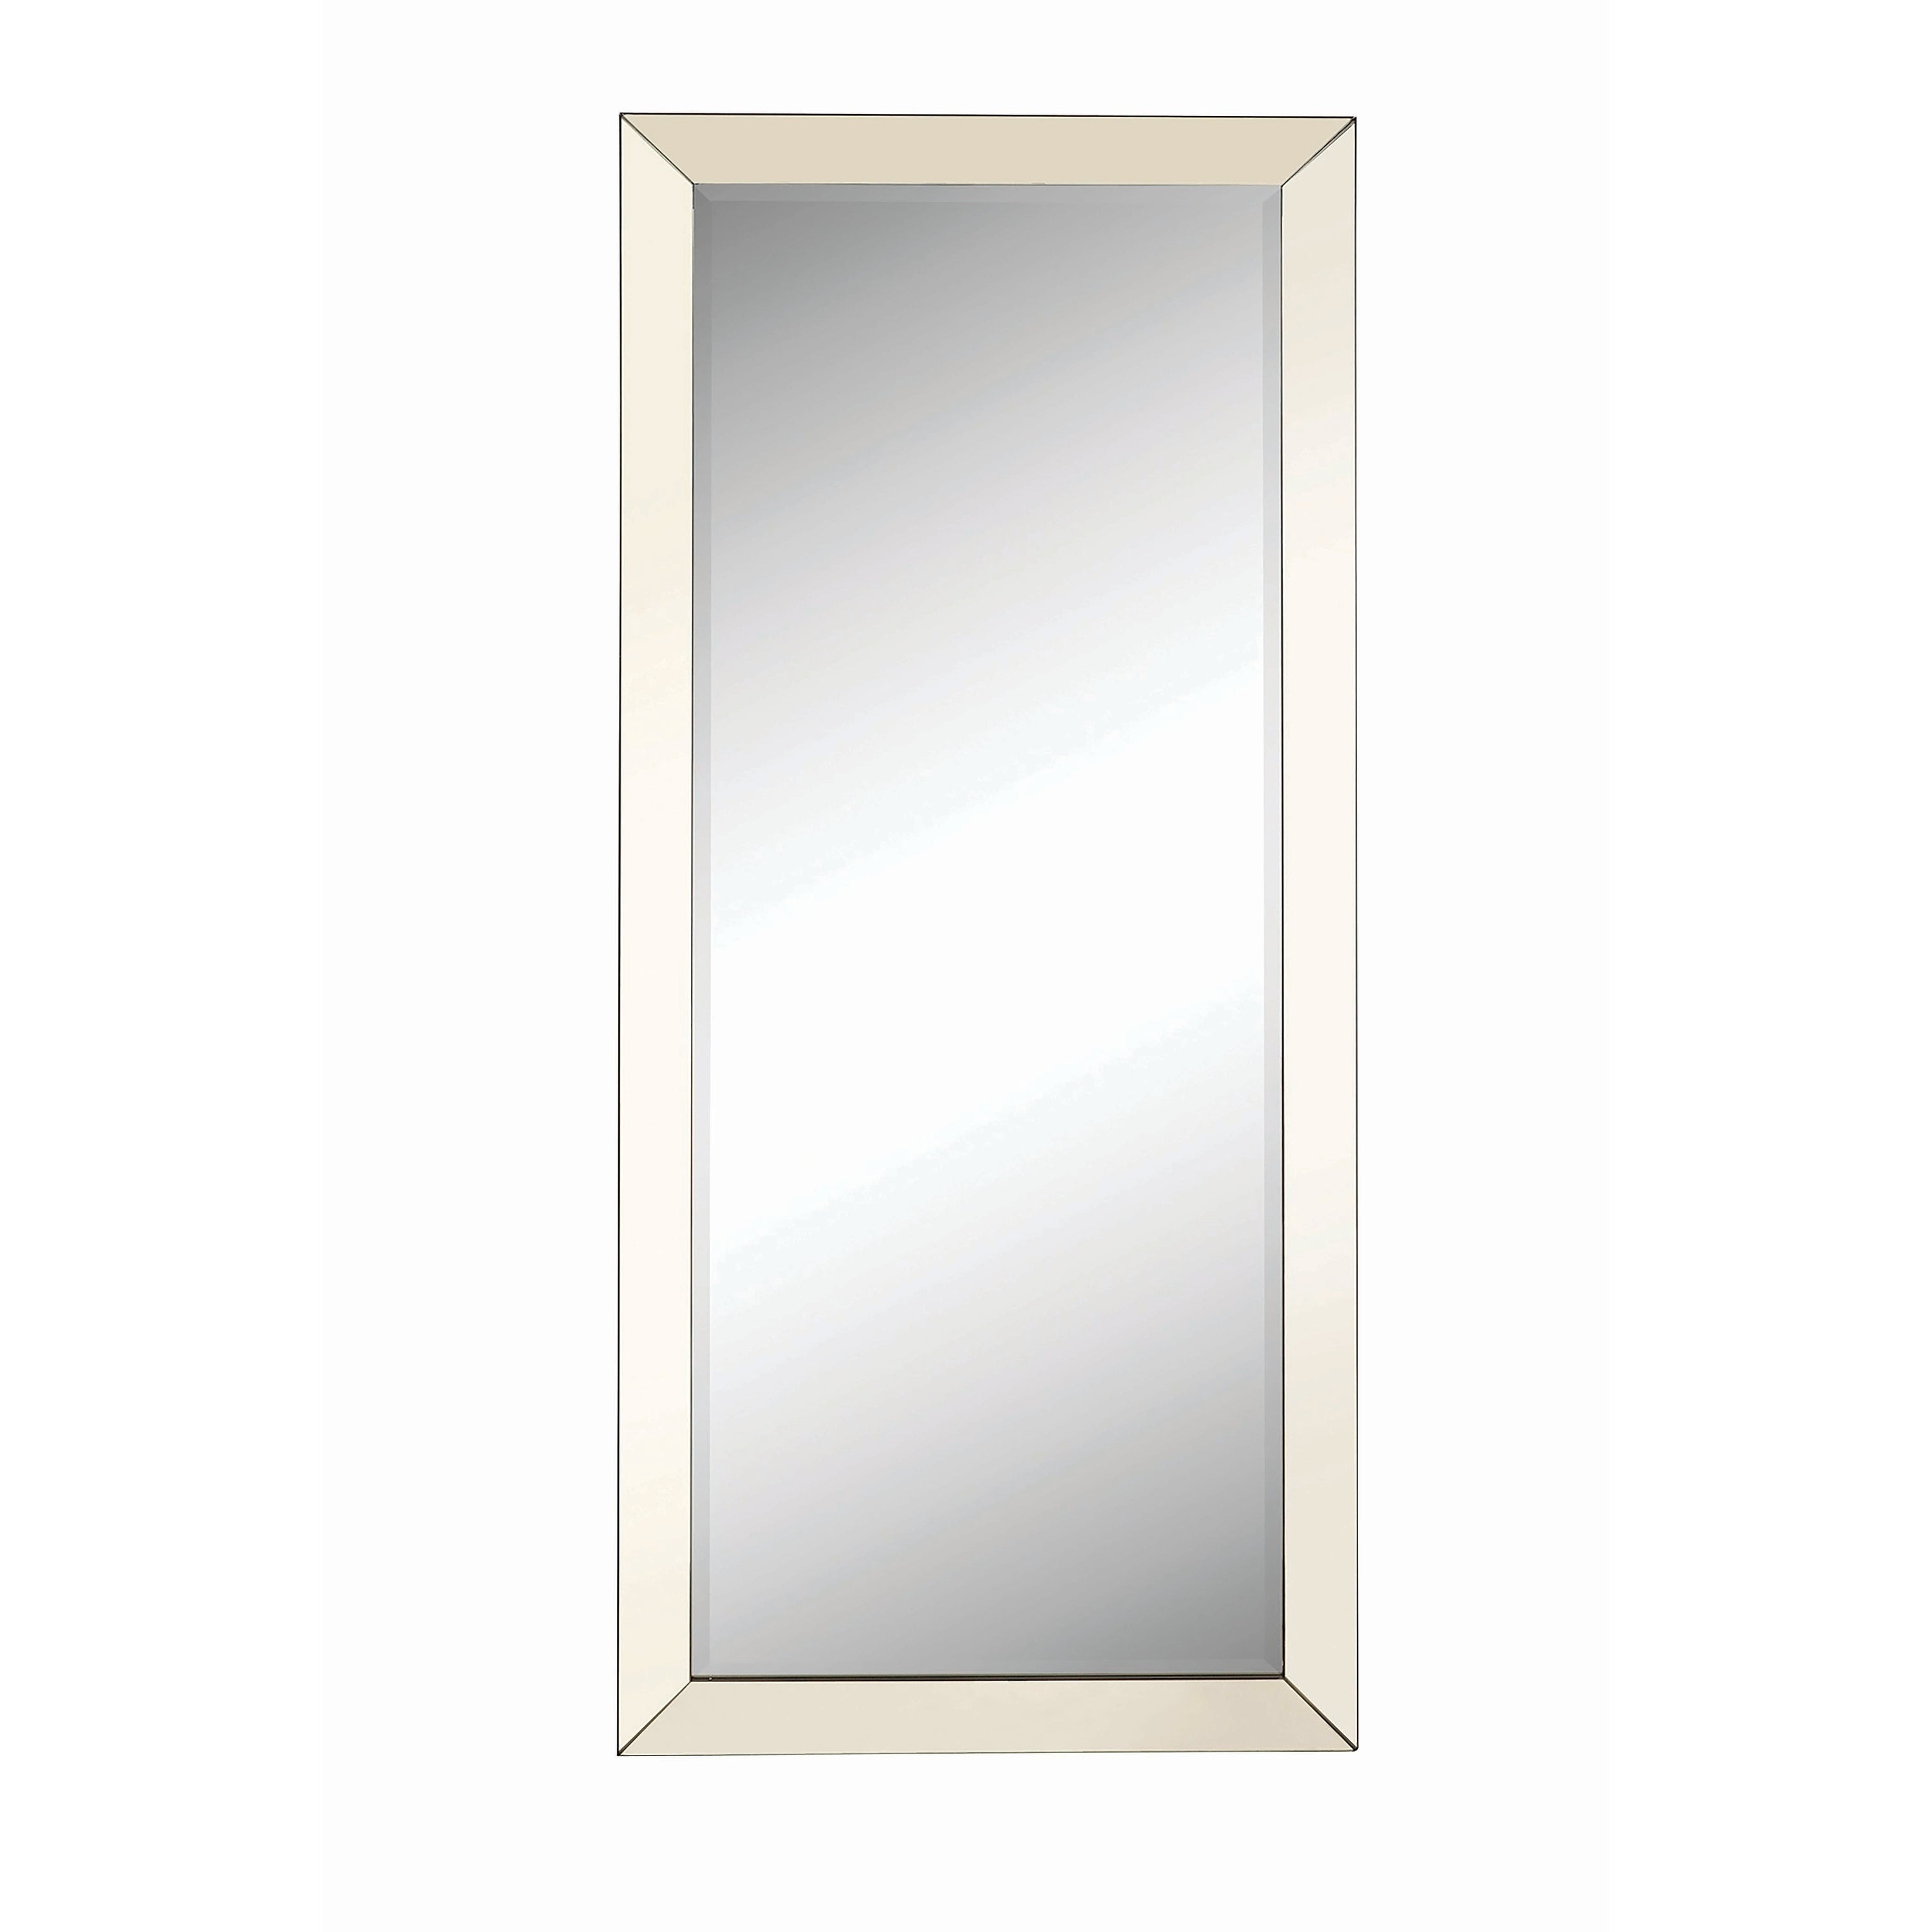 Shop Large Standing Wall Mirror With Mirror Frame 30 X 1 50 X 70 Overstock 12361232